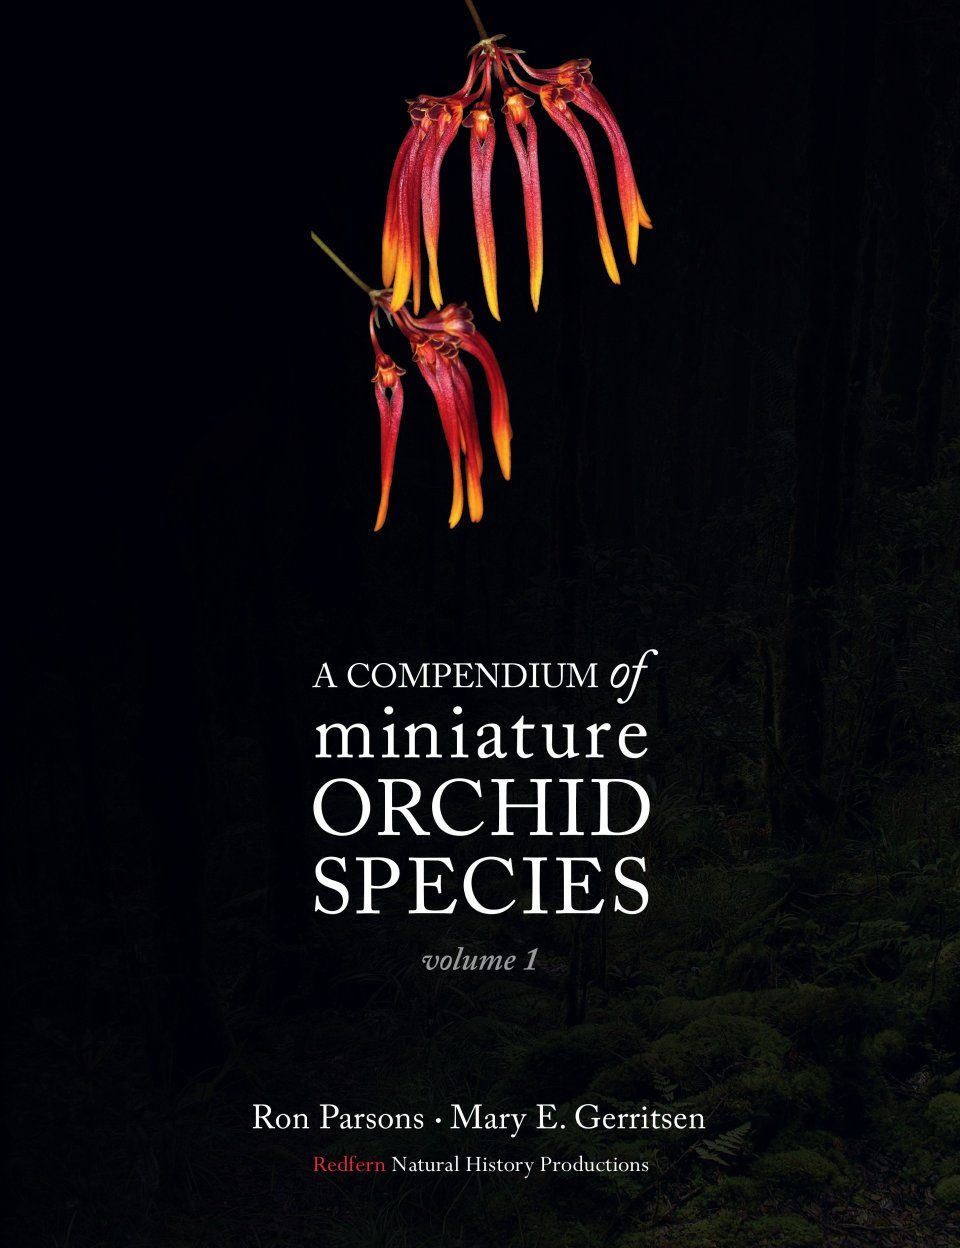 A Compendium of Miniature Orchid Species, Volume 1